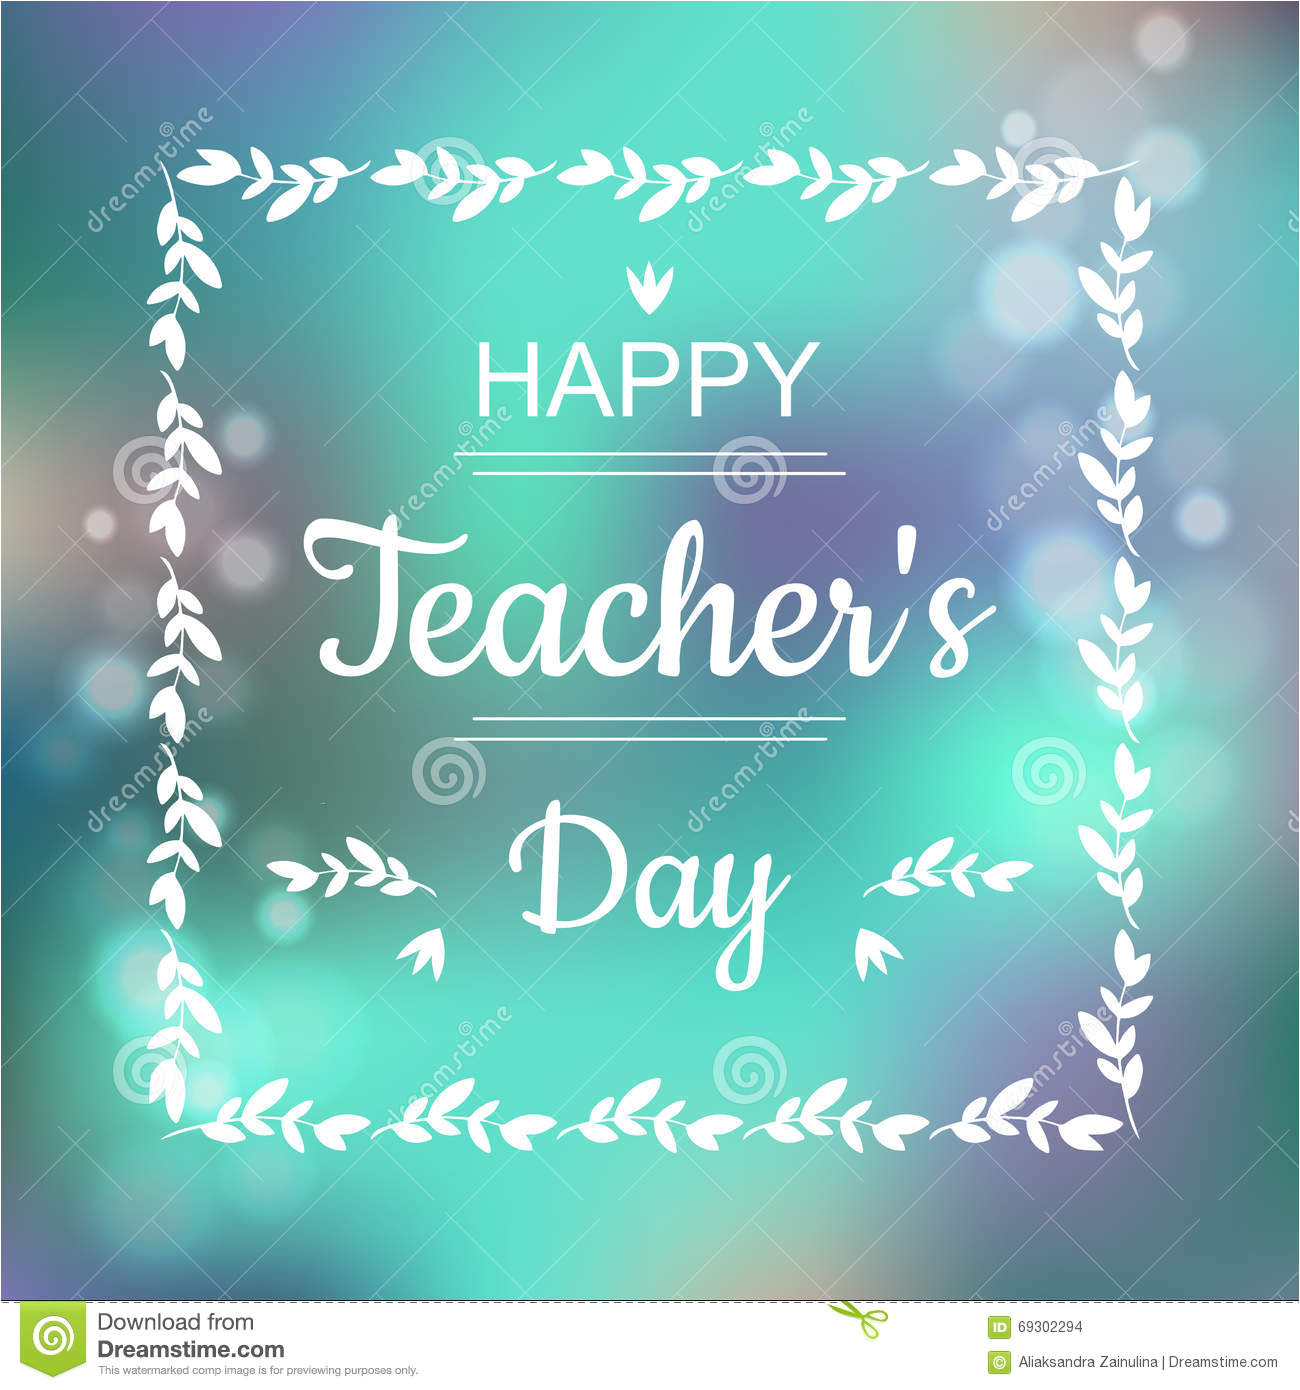 greeting card happy teachers day abstract background text square frame vector format illustration 69302294 jpg